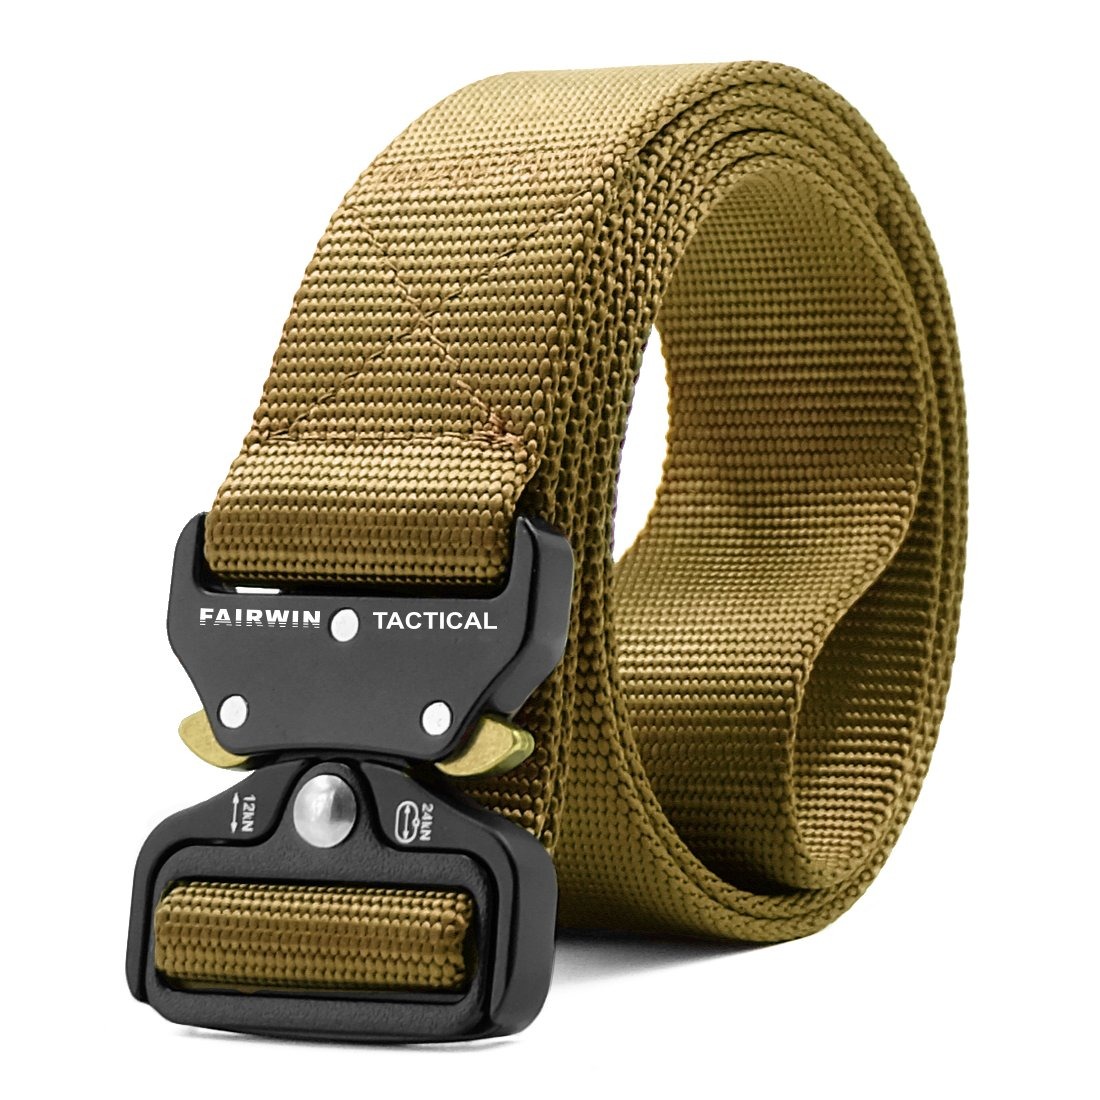 Fairwin Tactical Belt, Military Style Webbing Riggers Web Belt with Heavy-Duty Quick-Release Metal Buckle …